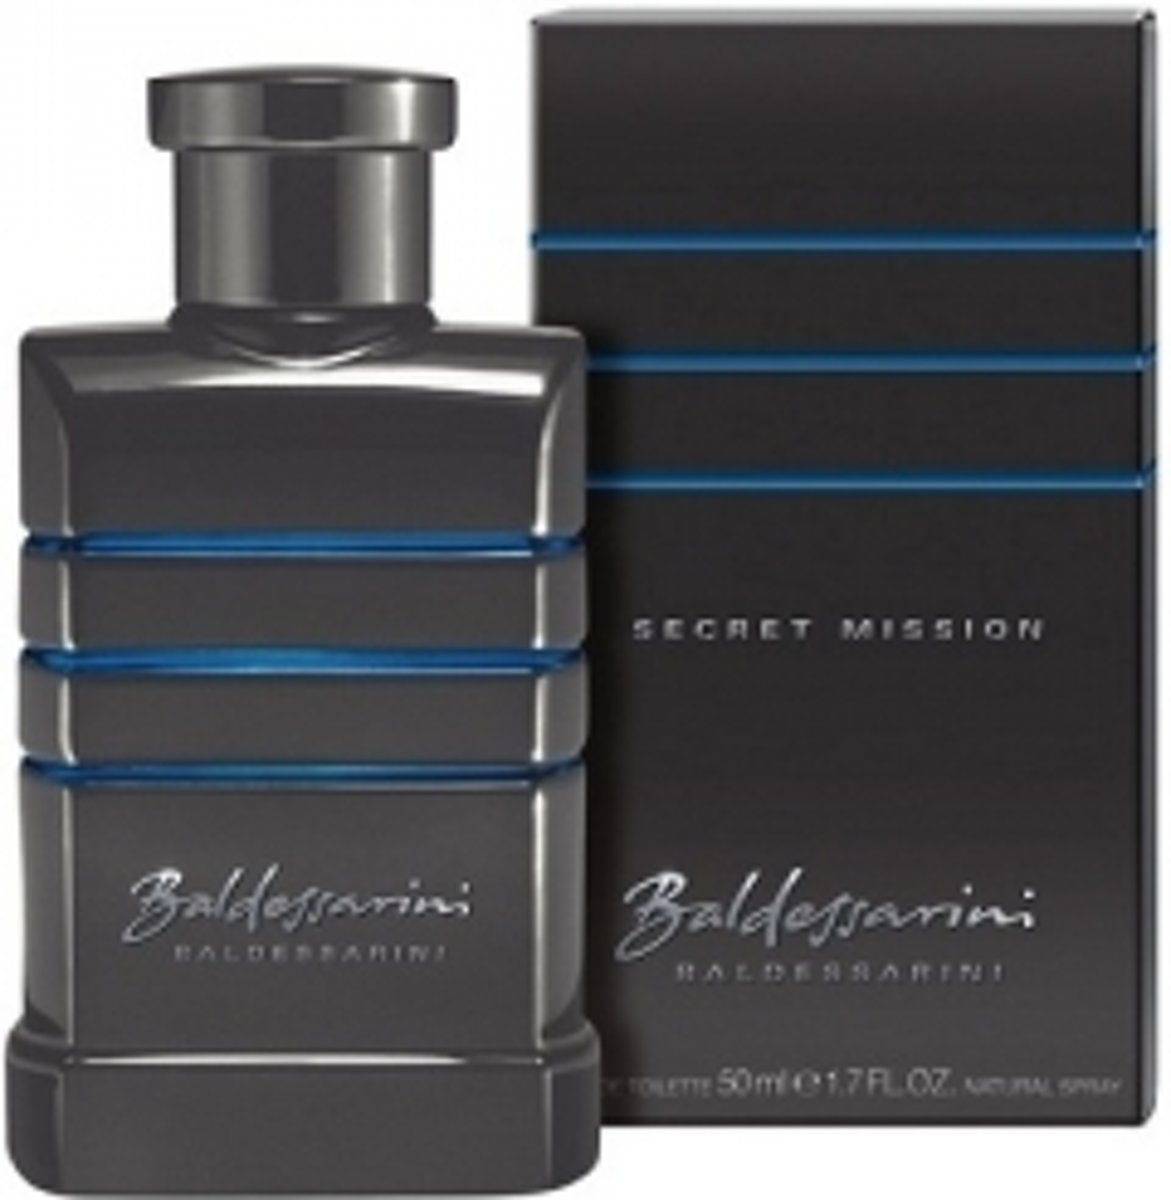 Baldessarini Secret Mission - 50 ml - Eau de toilette